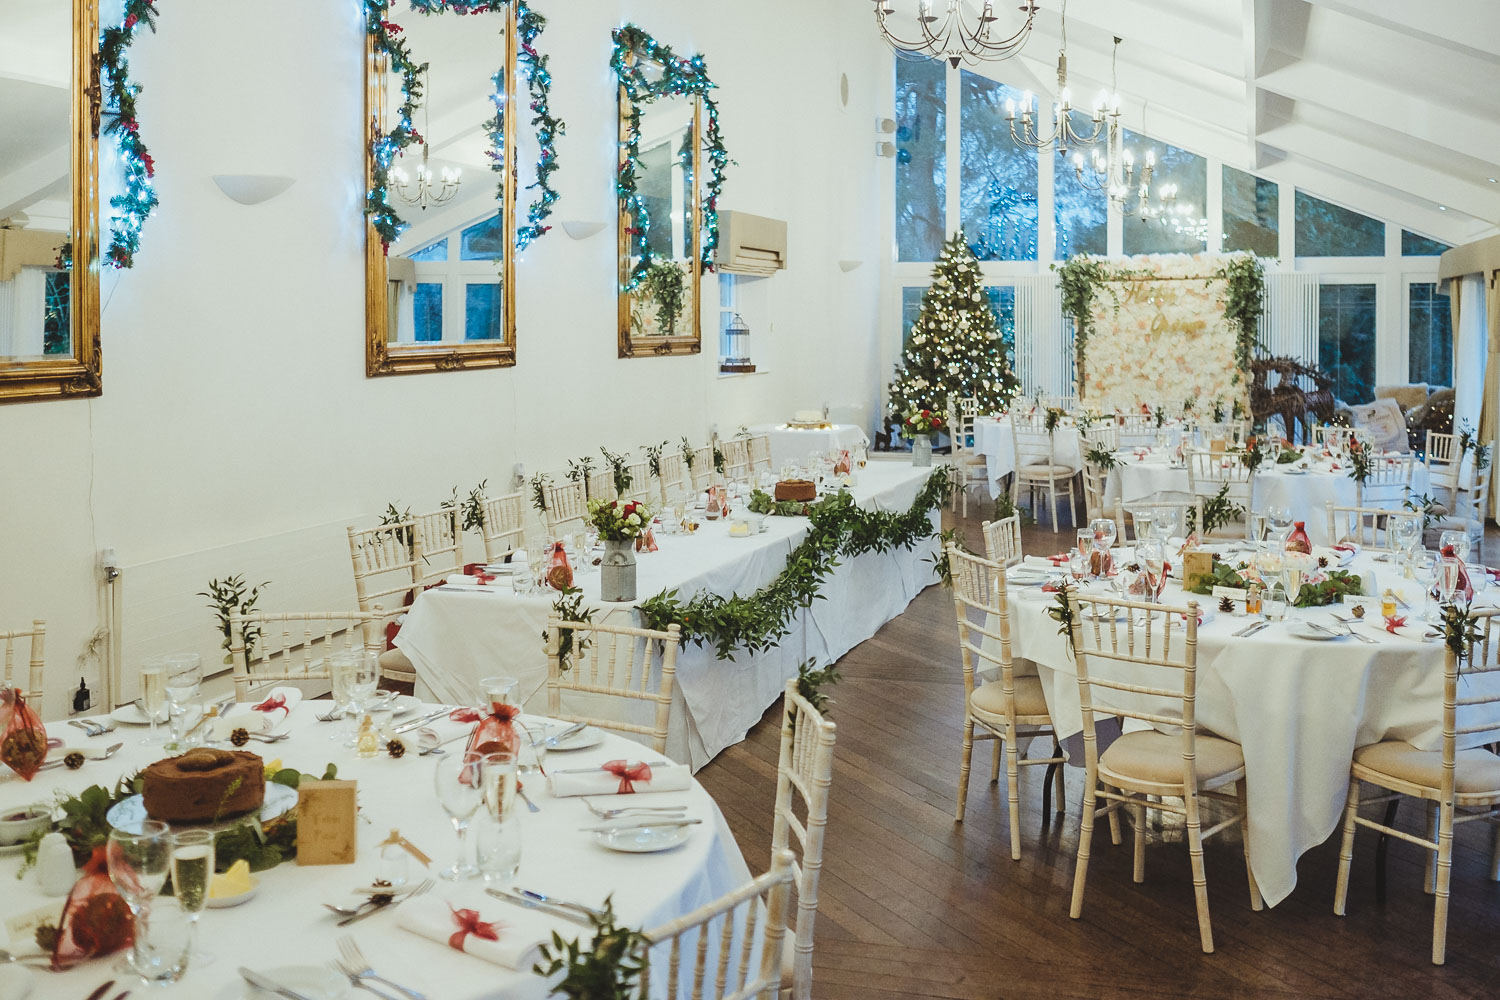 Horton Grange set up for a Christmas wedding breakfast